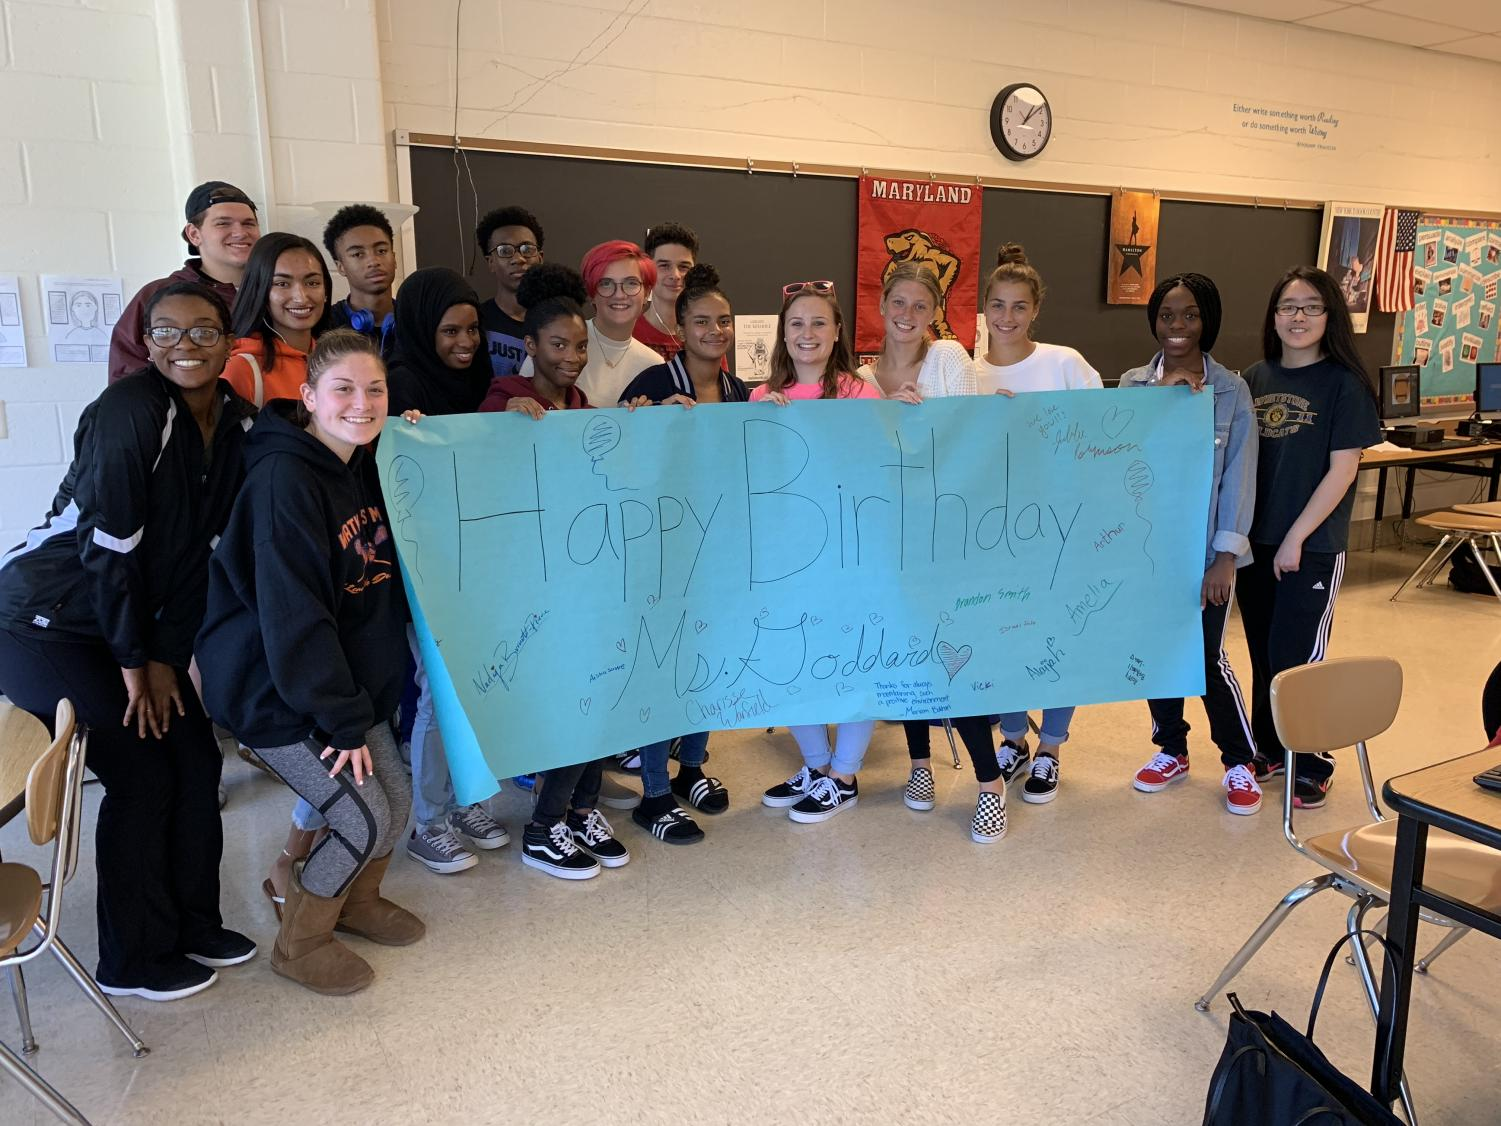 Happy birthday, Ms. Goddard!  Love, the Current staff